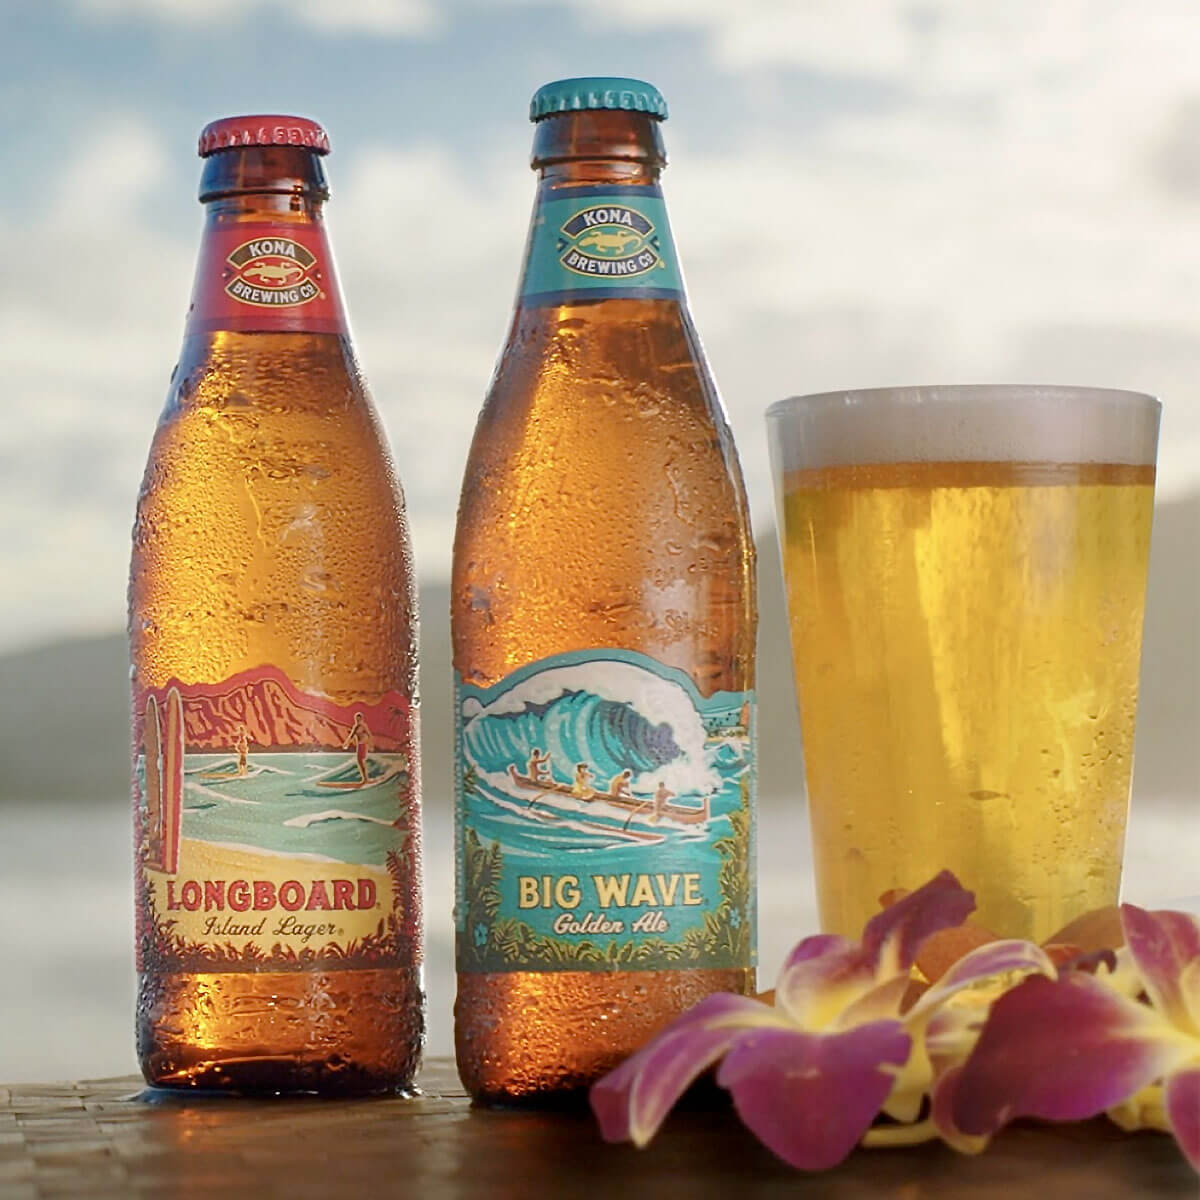 Beers from Kona Brewing, one of the brands part of the Craft Brew Alliance